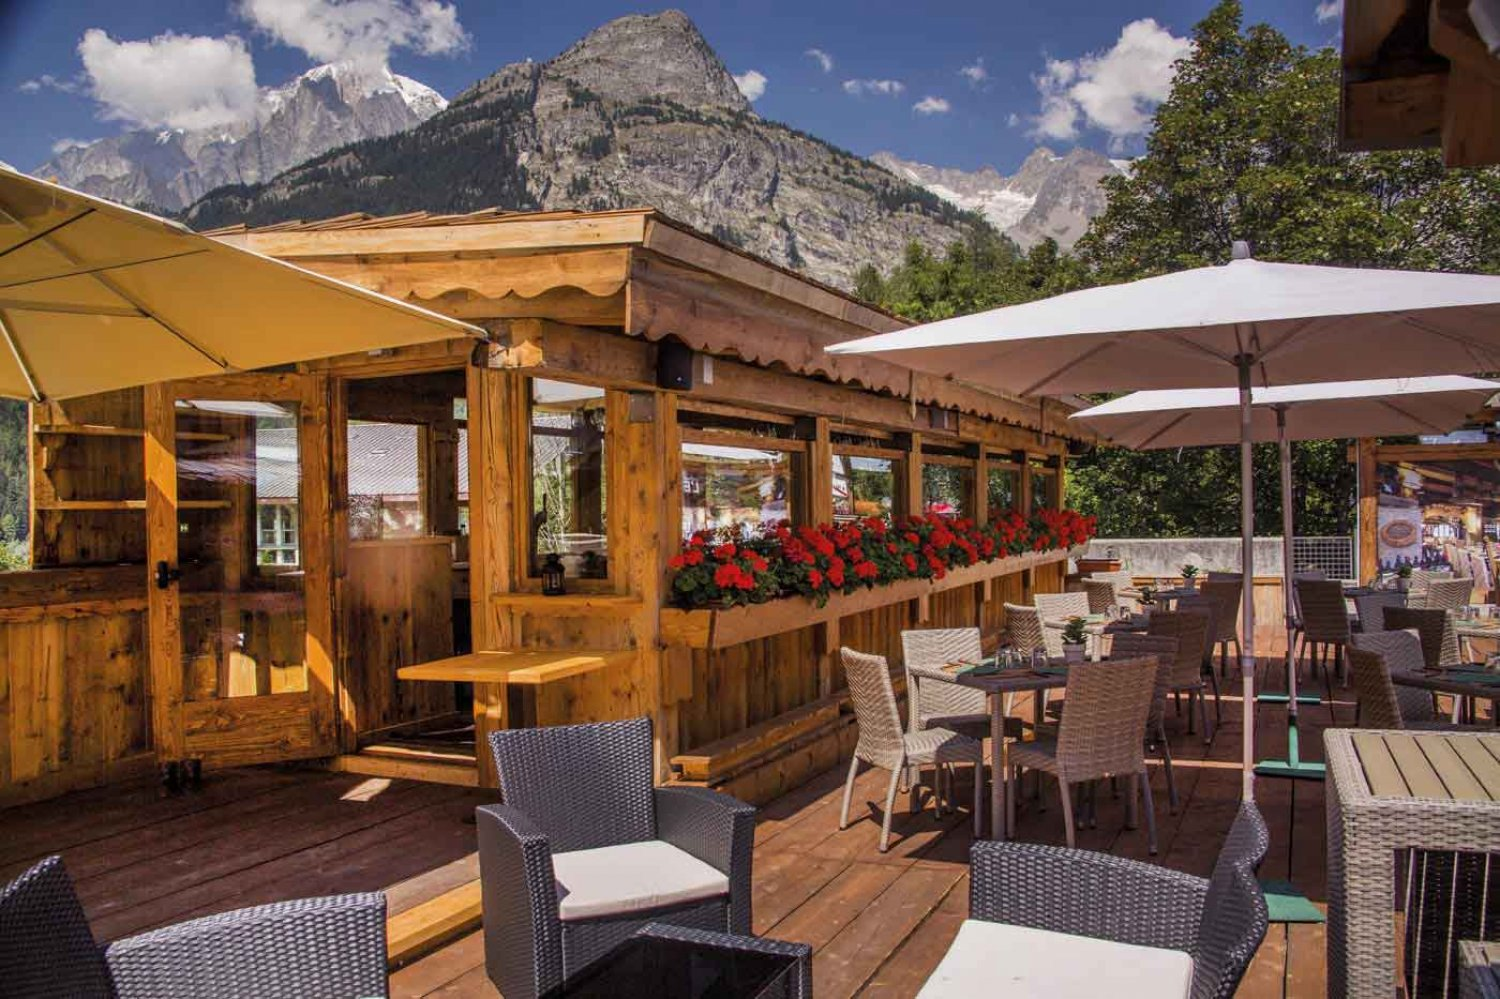 L étoile Pizzeria And Steak House In Courmayeur Partners